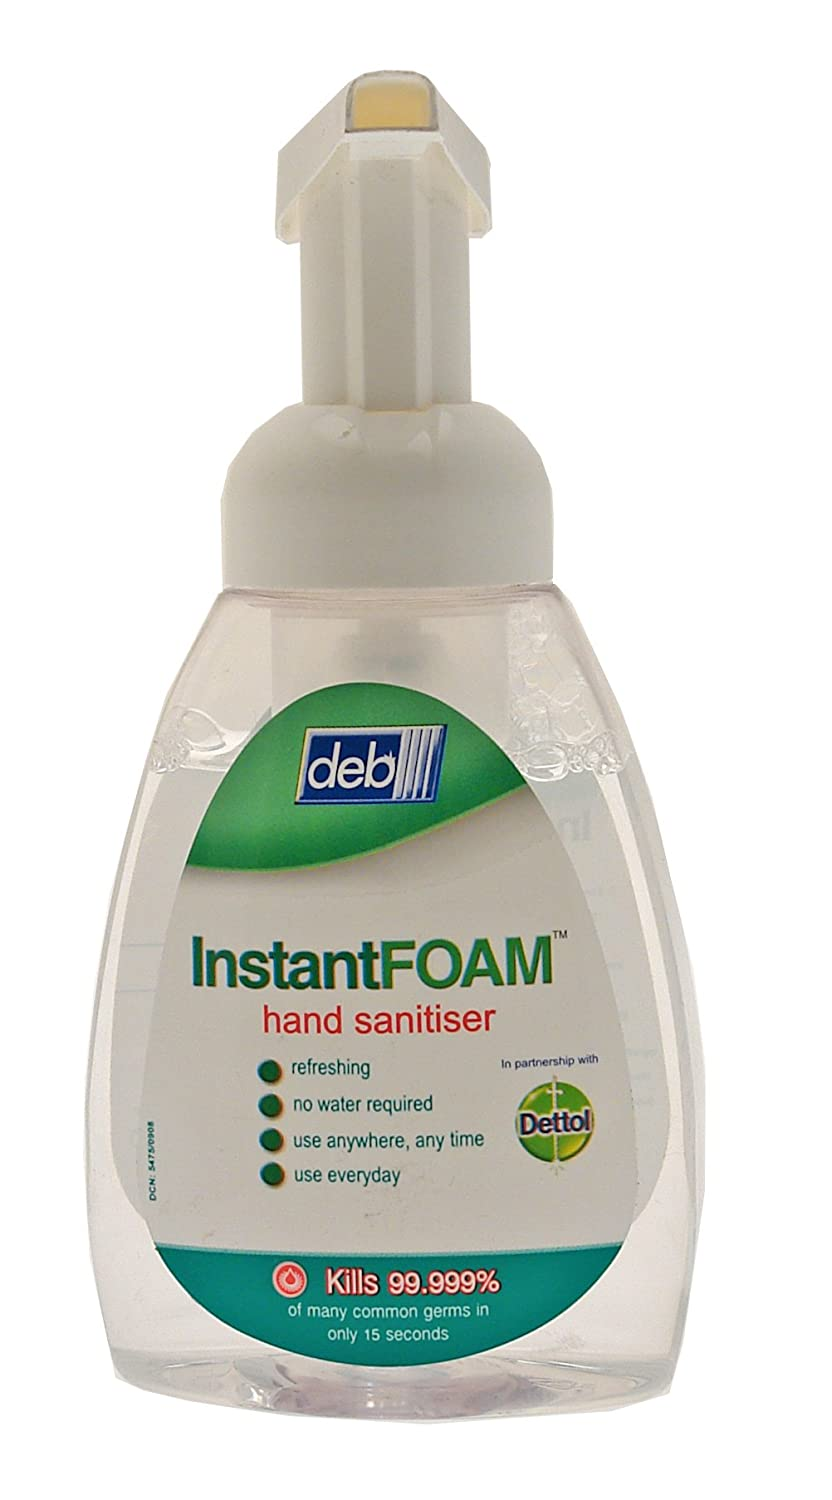 DEB InstantFOAM hand sanitiser, 250 pump action bottle Deb Group Ltd. DIS250ML